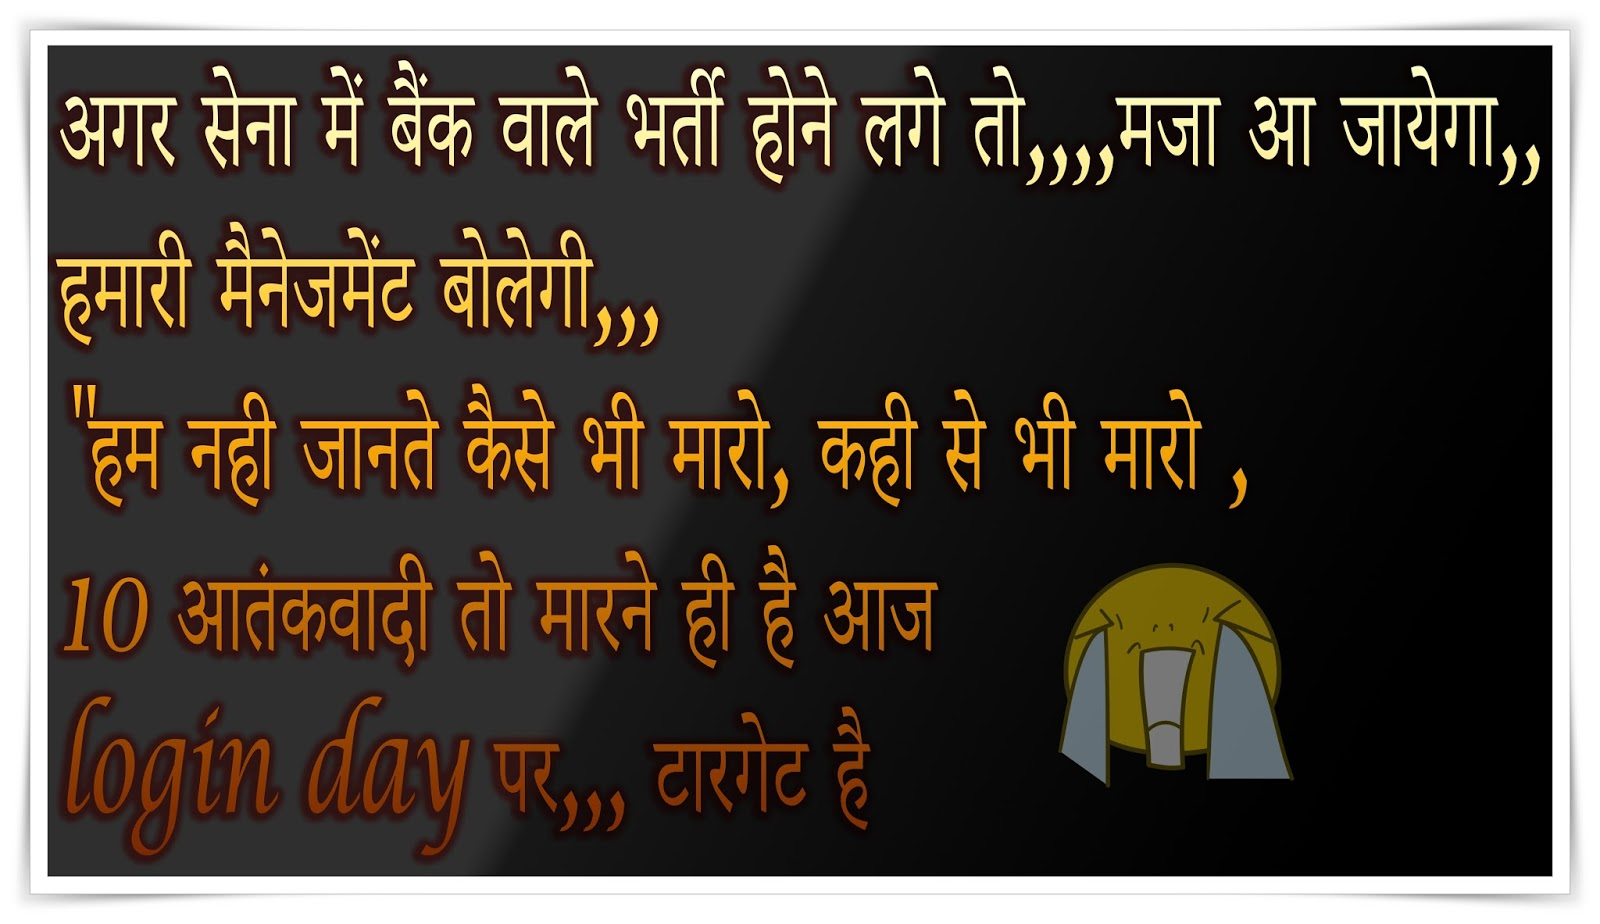 Funny Hindi Bank sms,Funny Banker jokes Sms Hindi,Funny Bank messages,Funny Bank Quotes